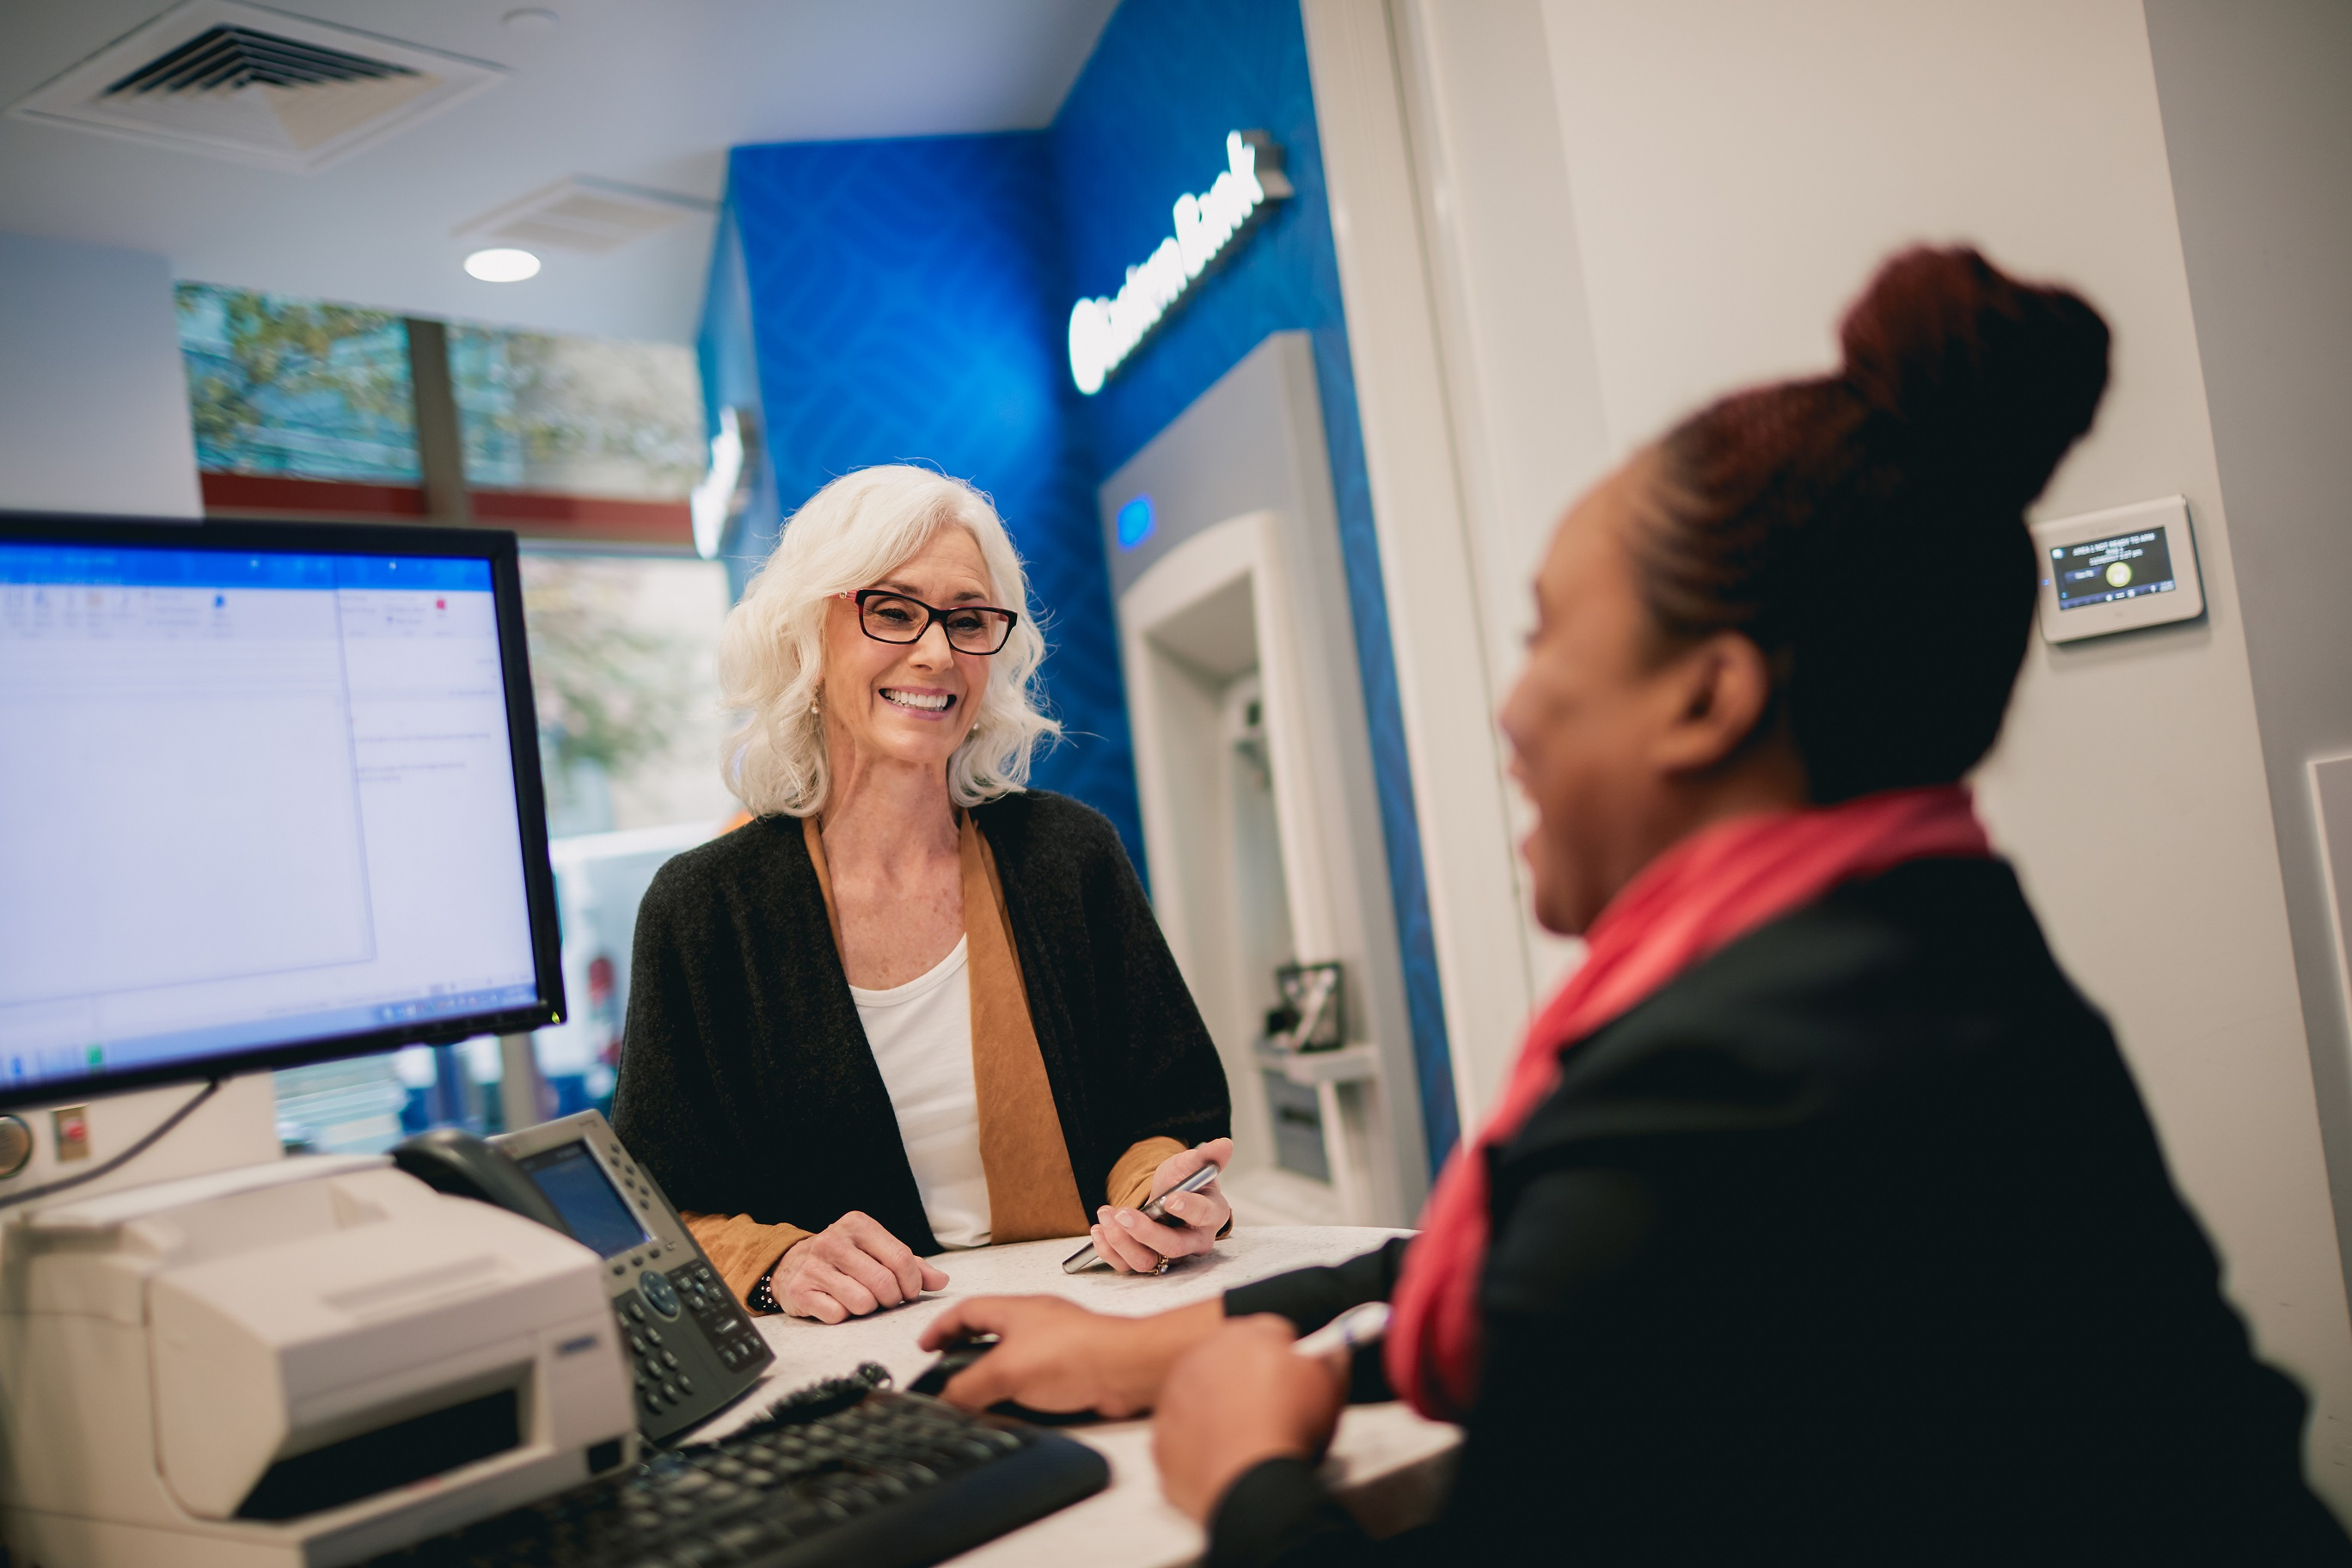 Woman at Teller Line in Branch